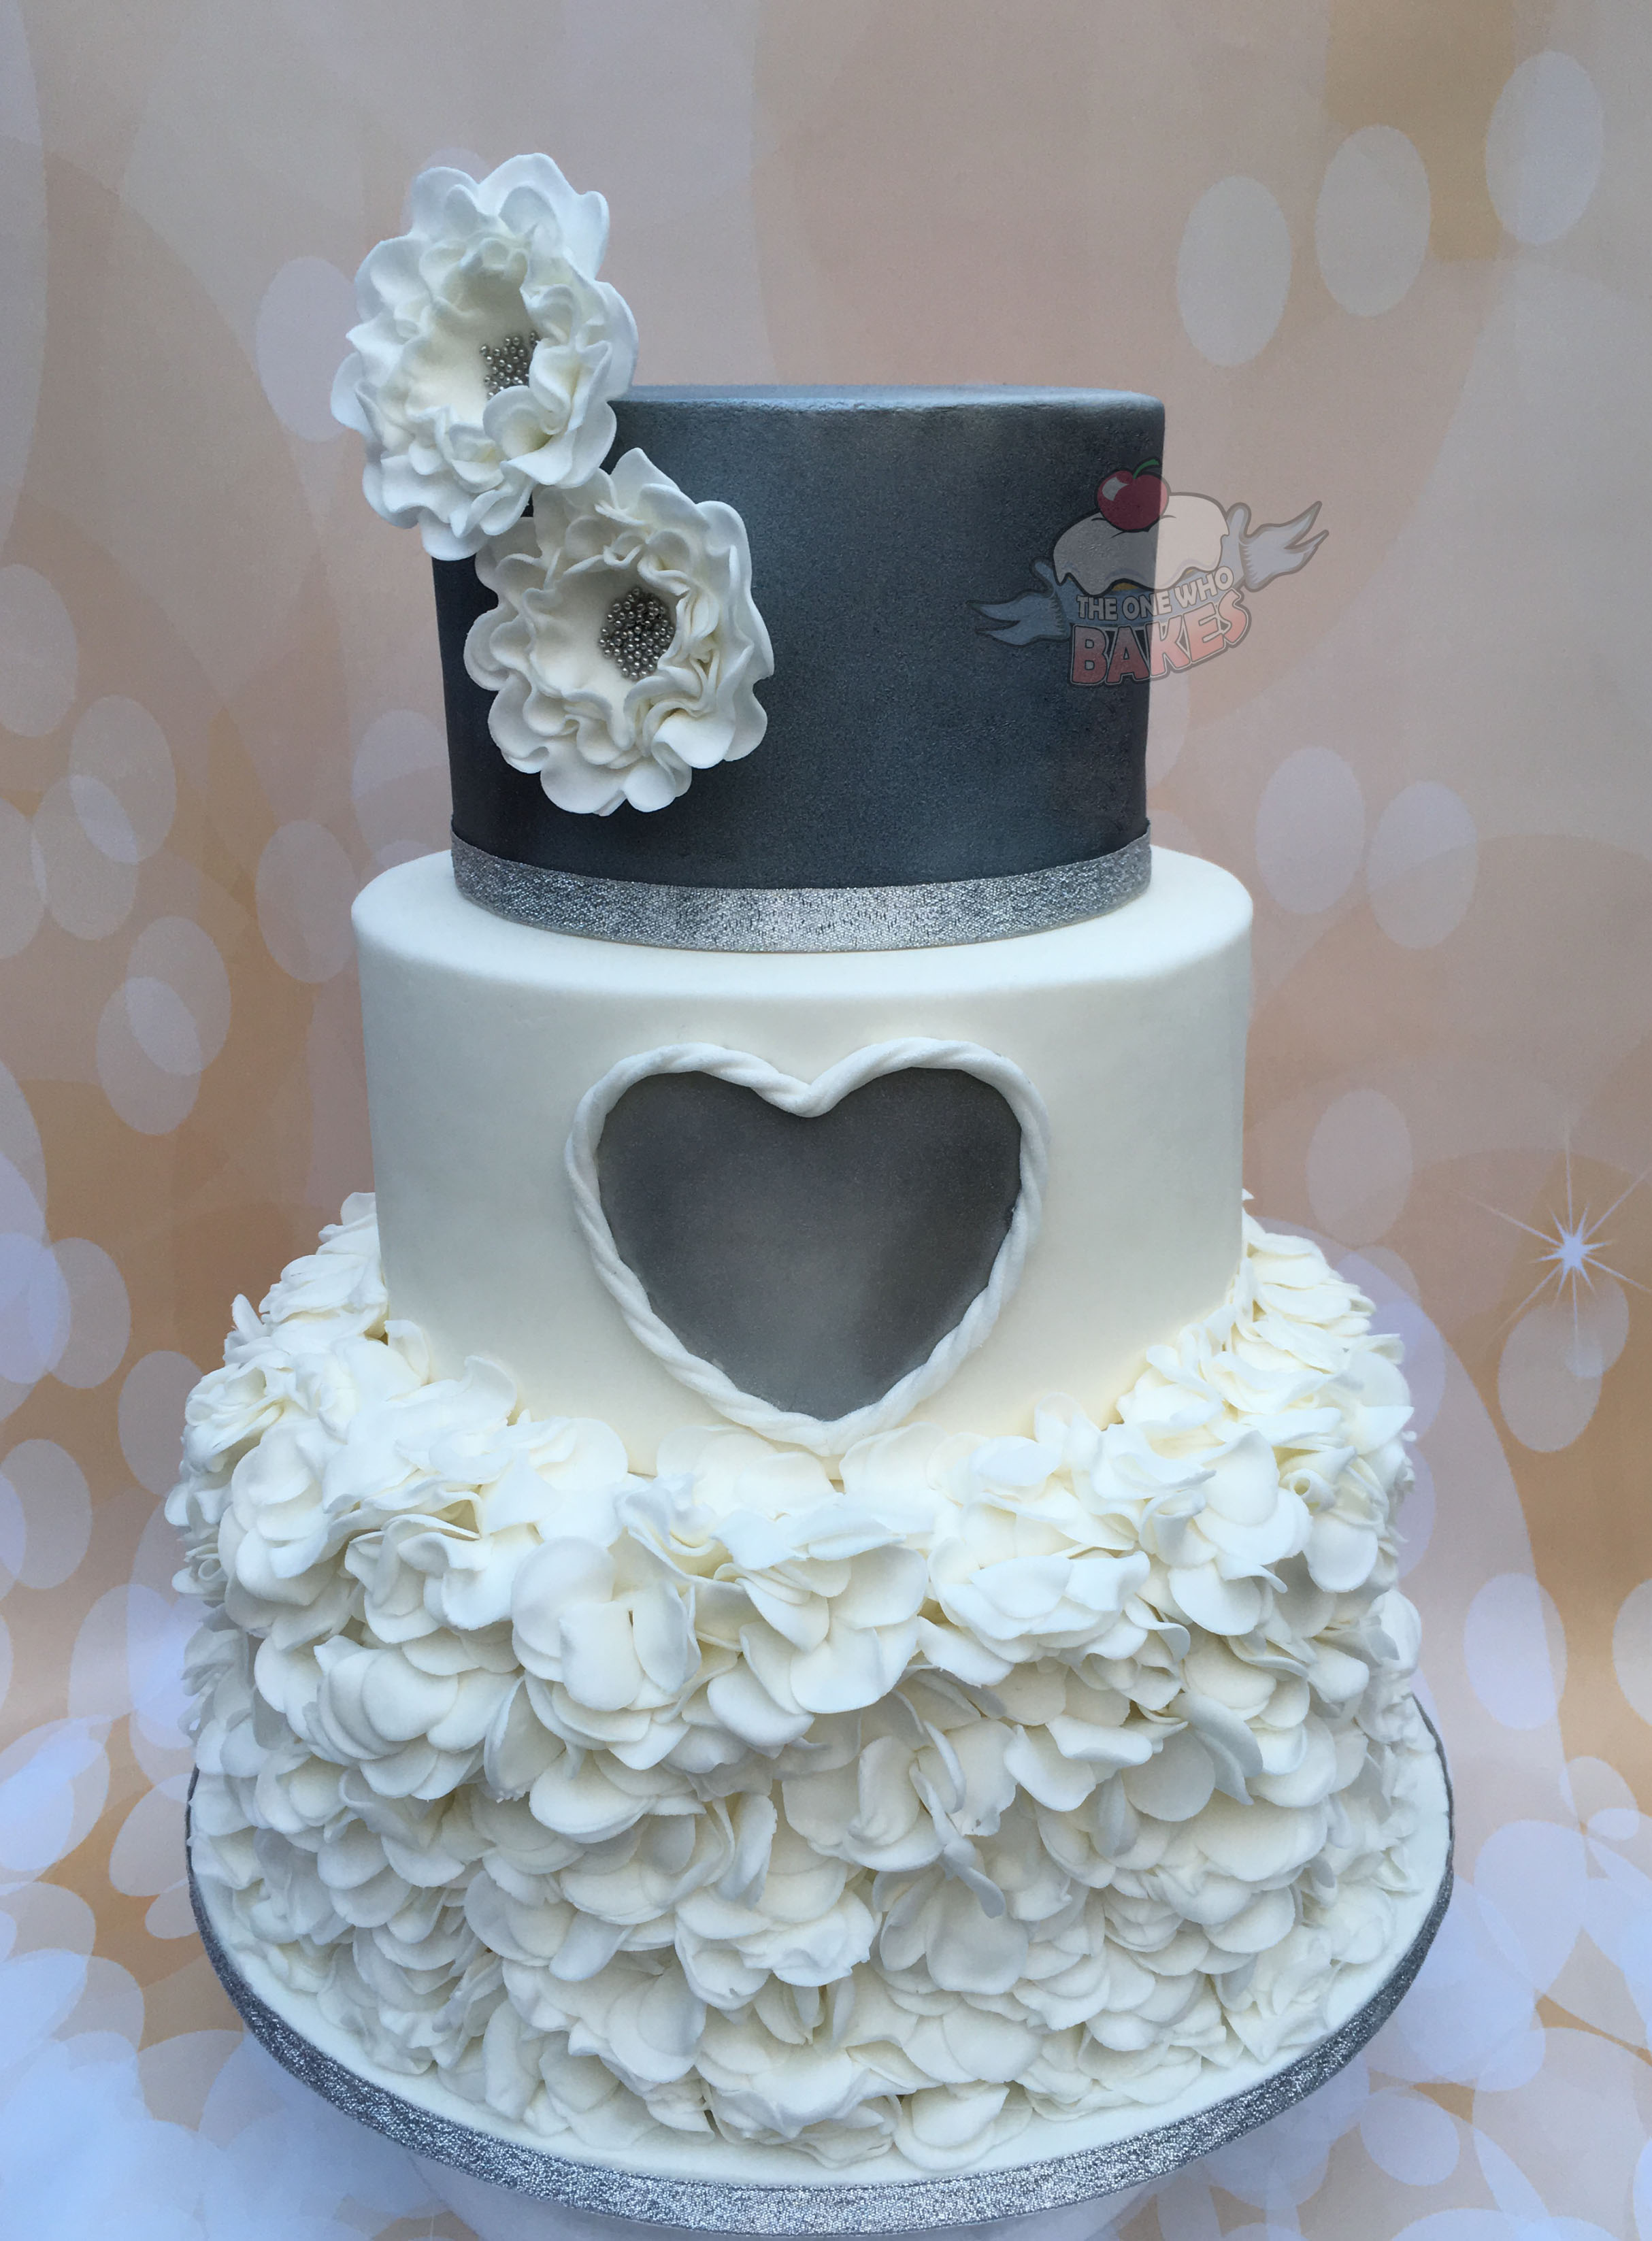 Heart & Ruffles Wedding Cake